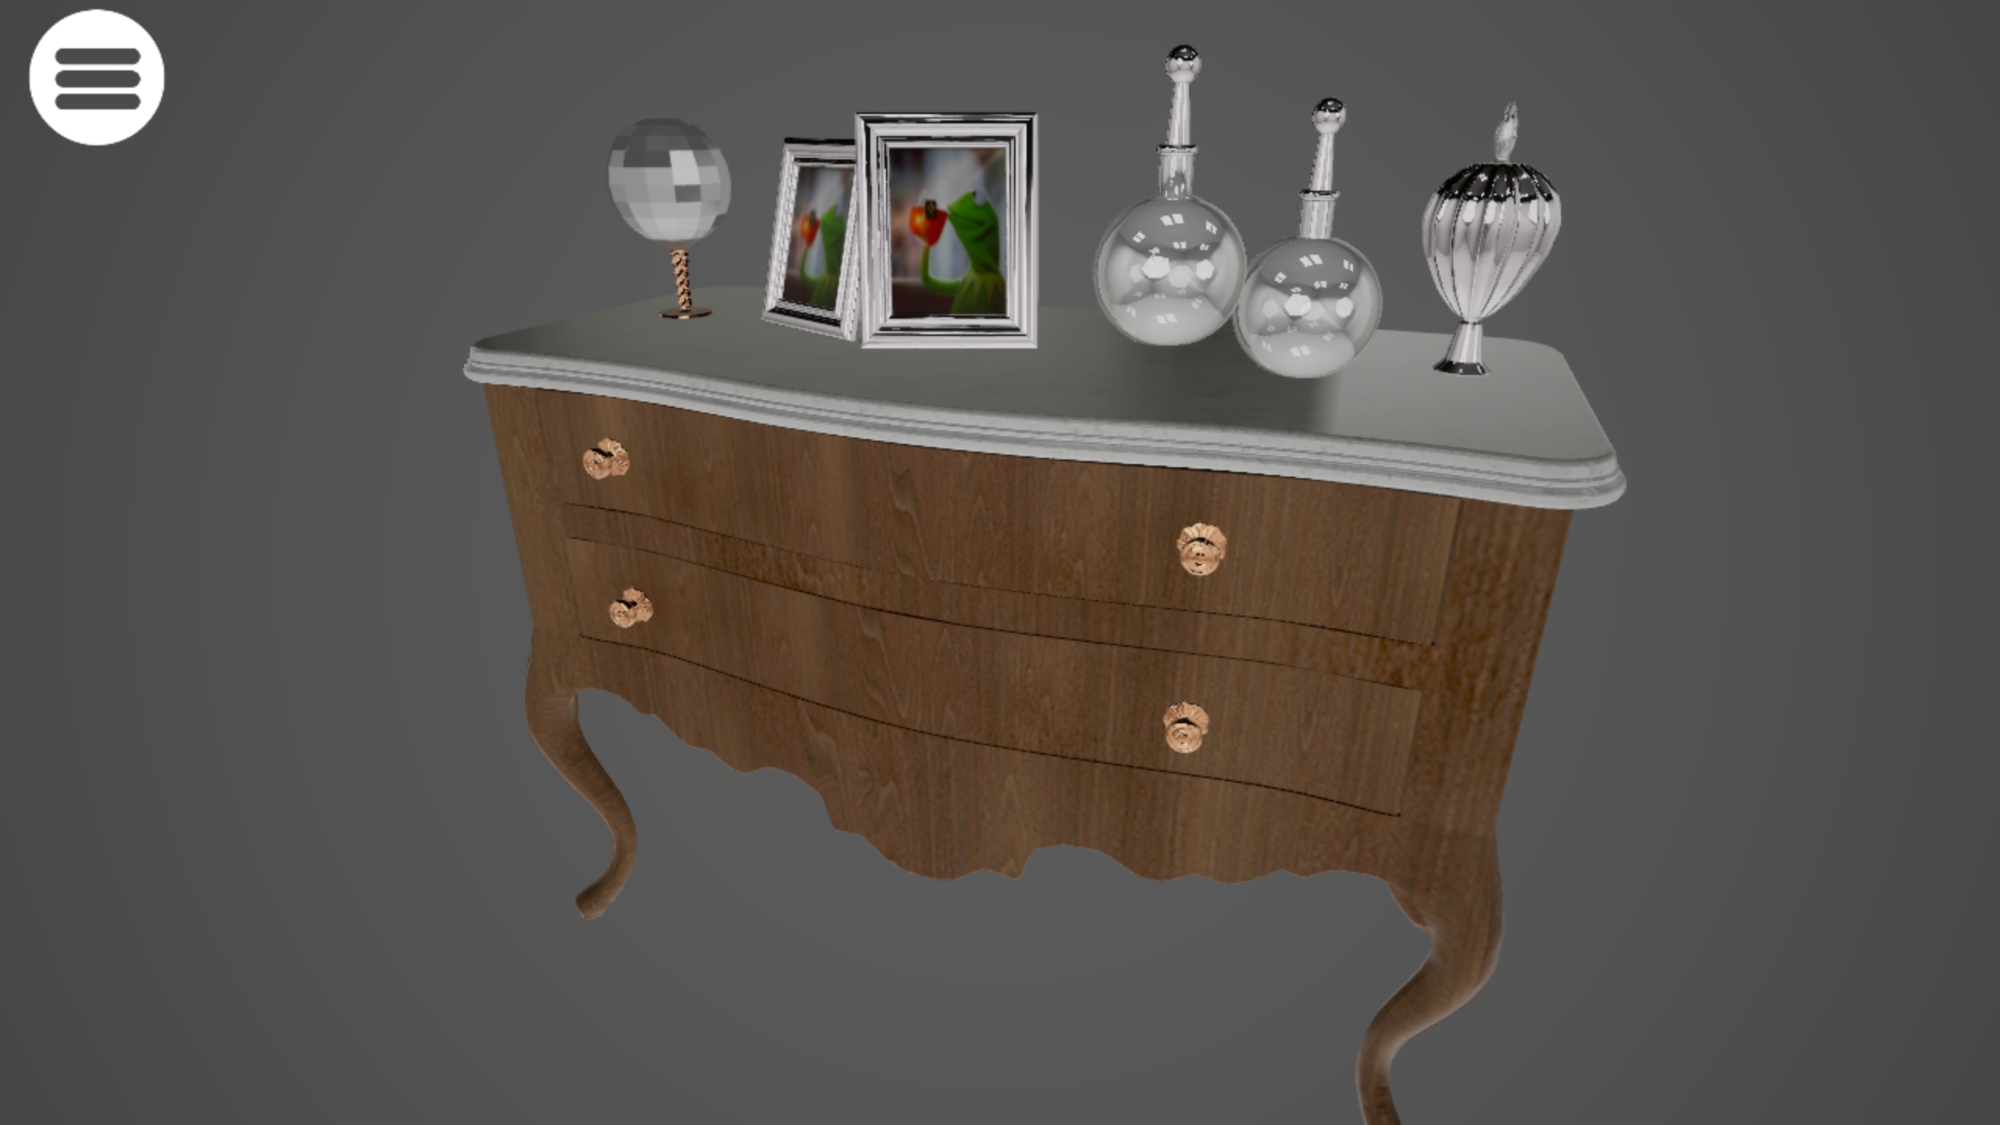 Screenshot_20171211-113454.png